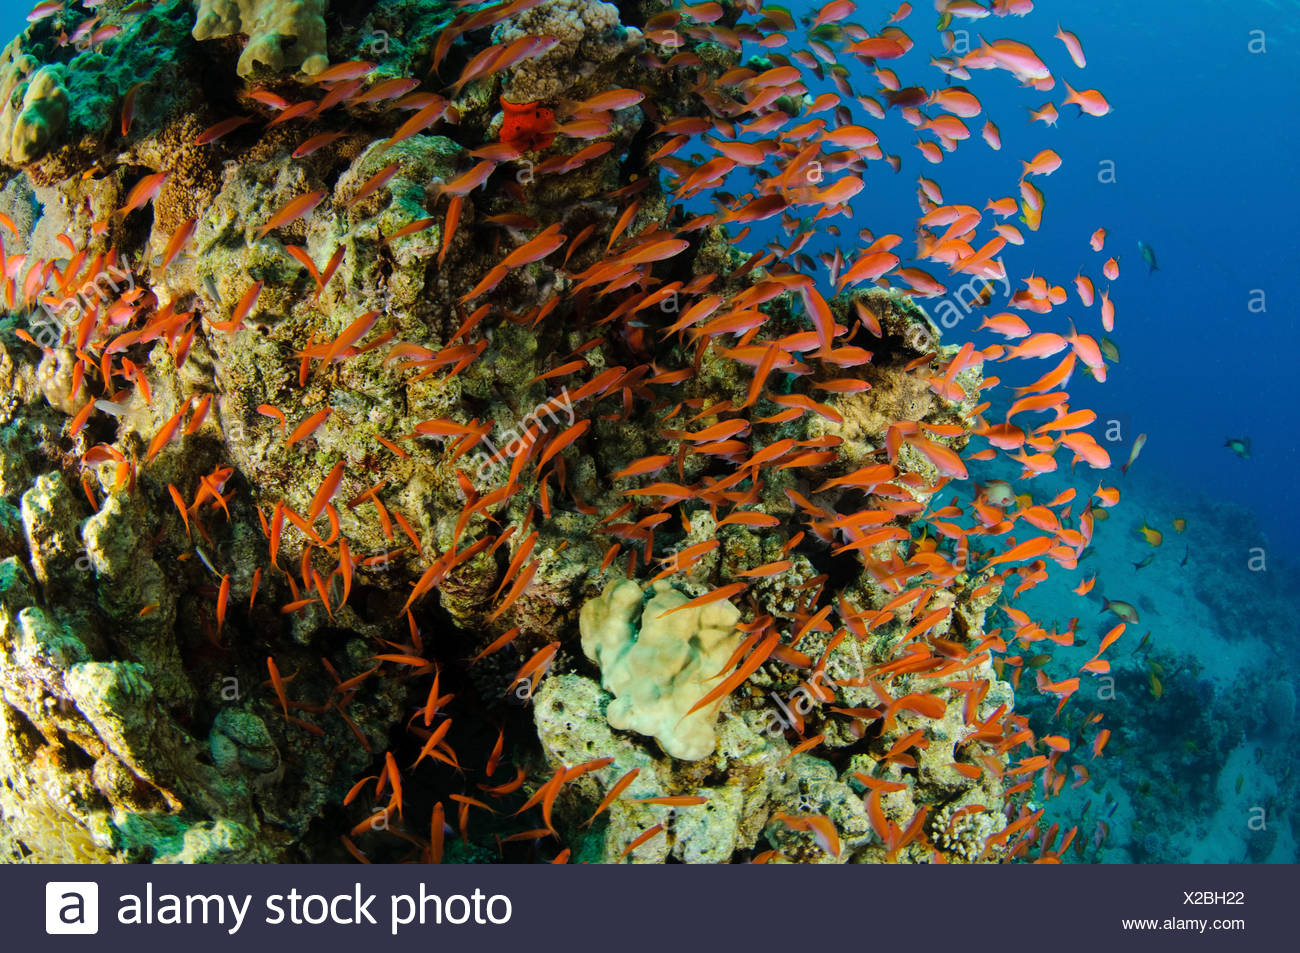 Underwater photography of a shoal of fish swimming near a coral reef in the Red Sea Aqaba, Jordan - Stock Image